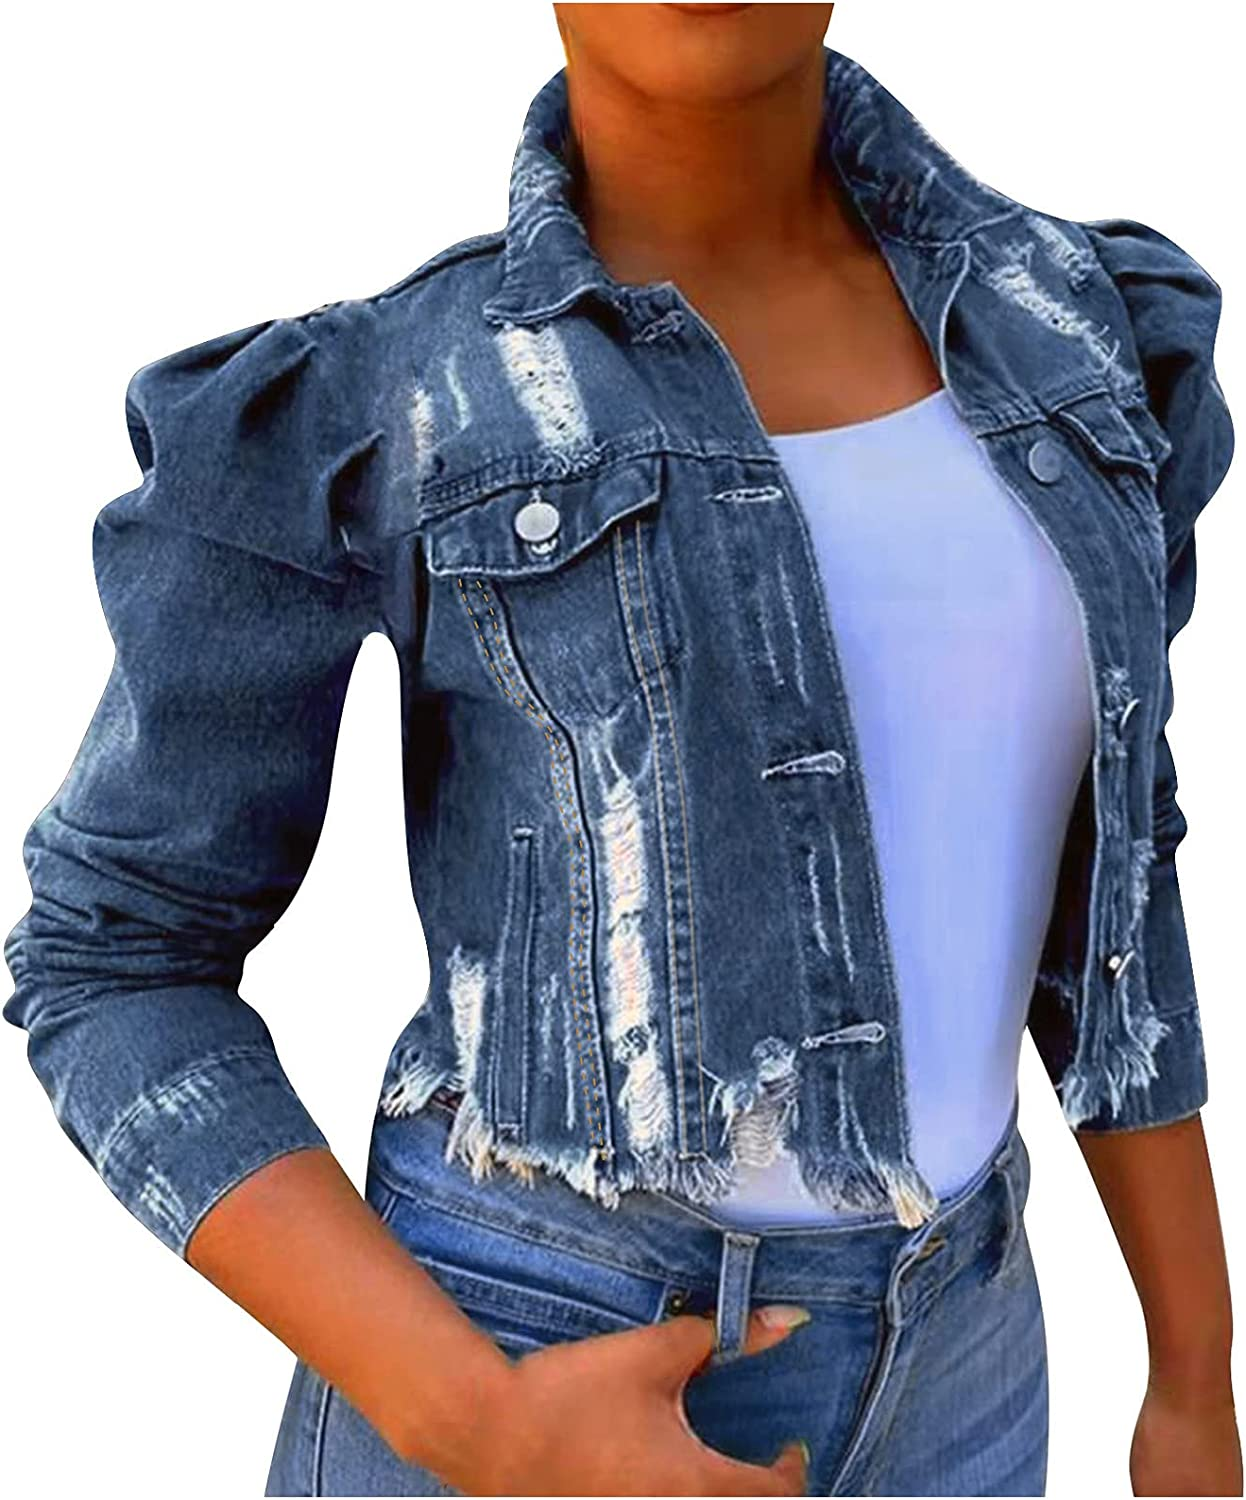 Women's Vintage Washed Denim Jackets Ladies Long Sleeved Button Top Drawtring Loose Winter Coats for Women